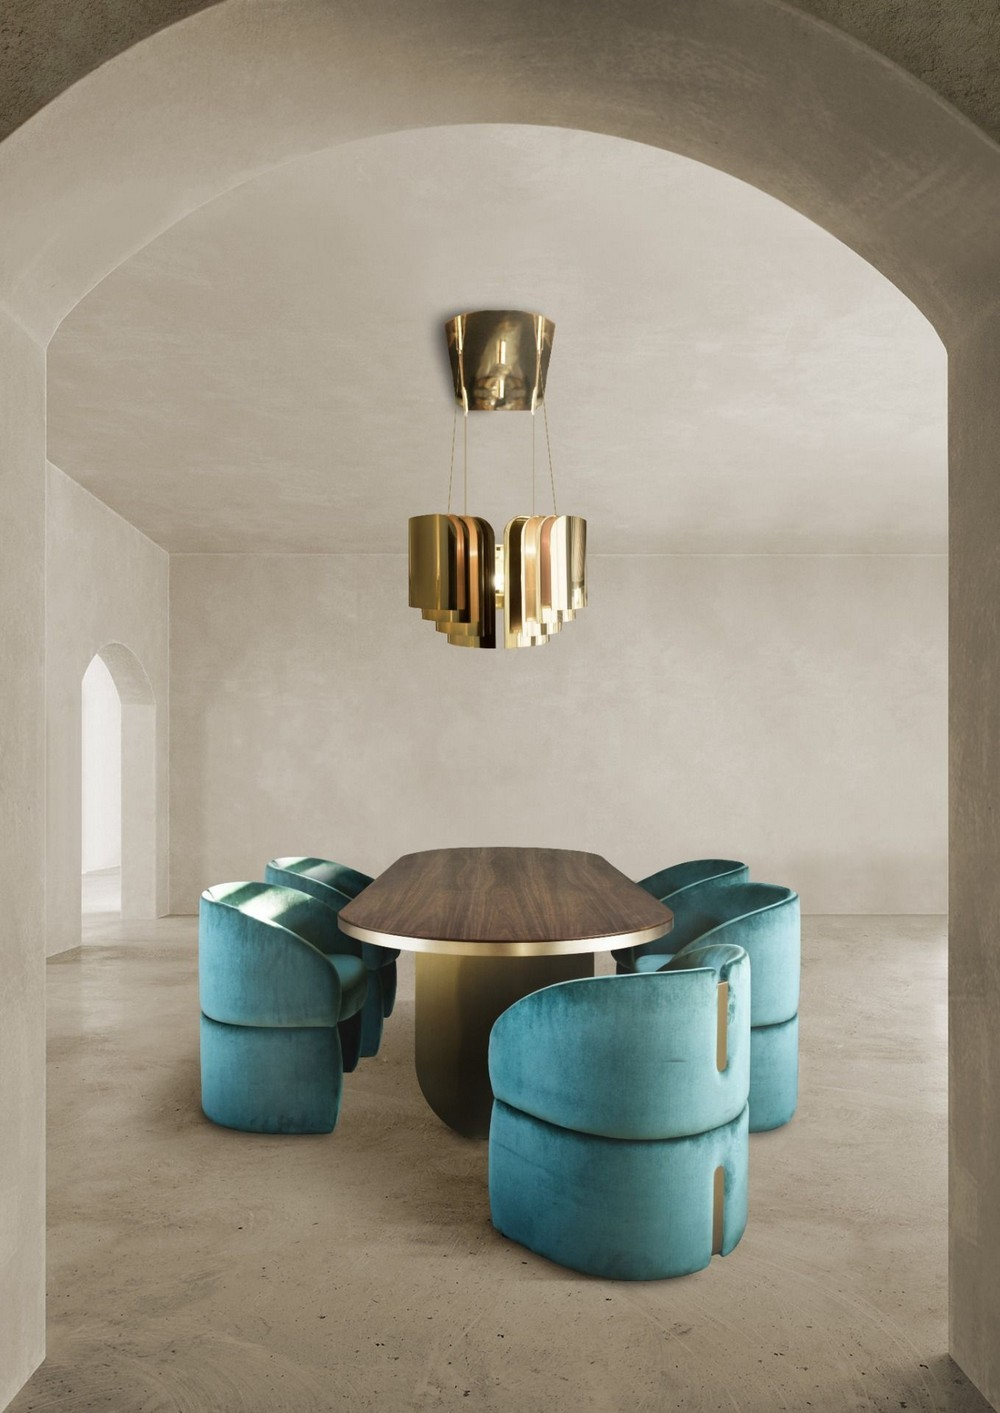 The Perfect Element For Stylish Settings: 10 Dining Tables You'll Love dining tables The Perfect Element For Stylish Settings: 25 Dining Tables You'll Love v9D8xCcQ